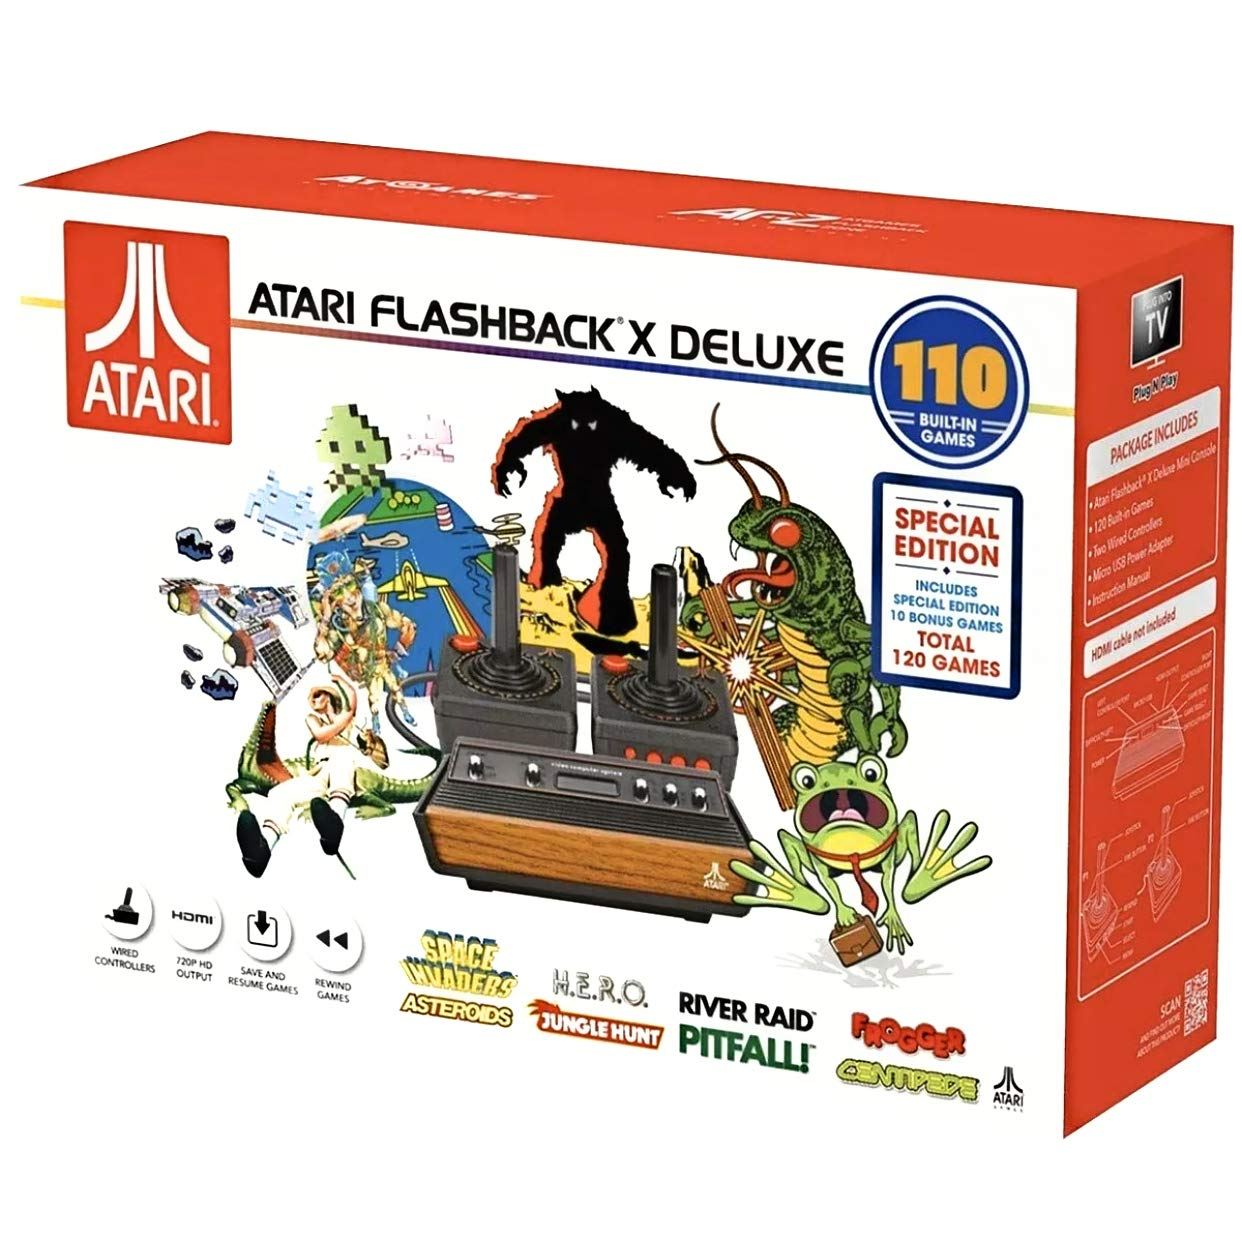 Atari Flashback X Deluxe Retro Console 120 Built-in Games - 2 Wired Controllers - HD HDMI Port - Plug n Play